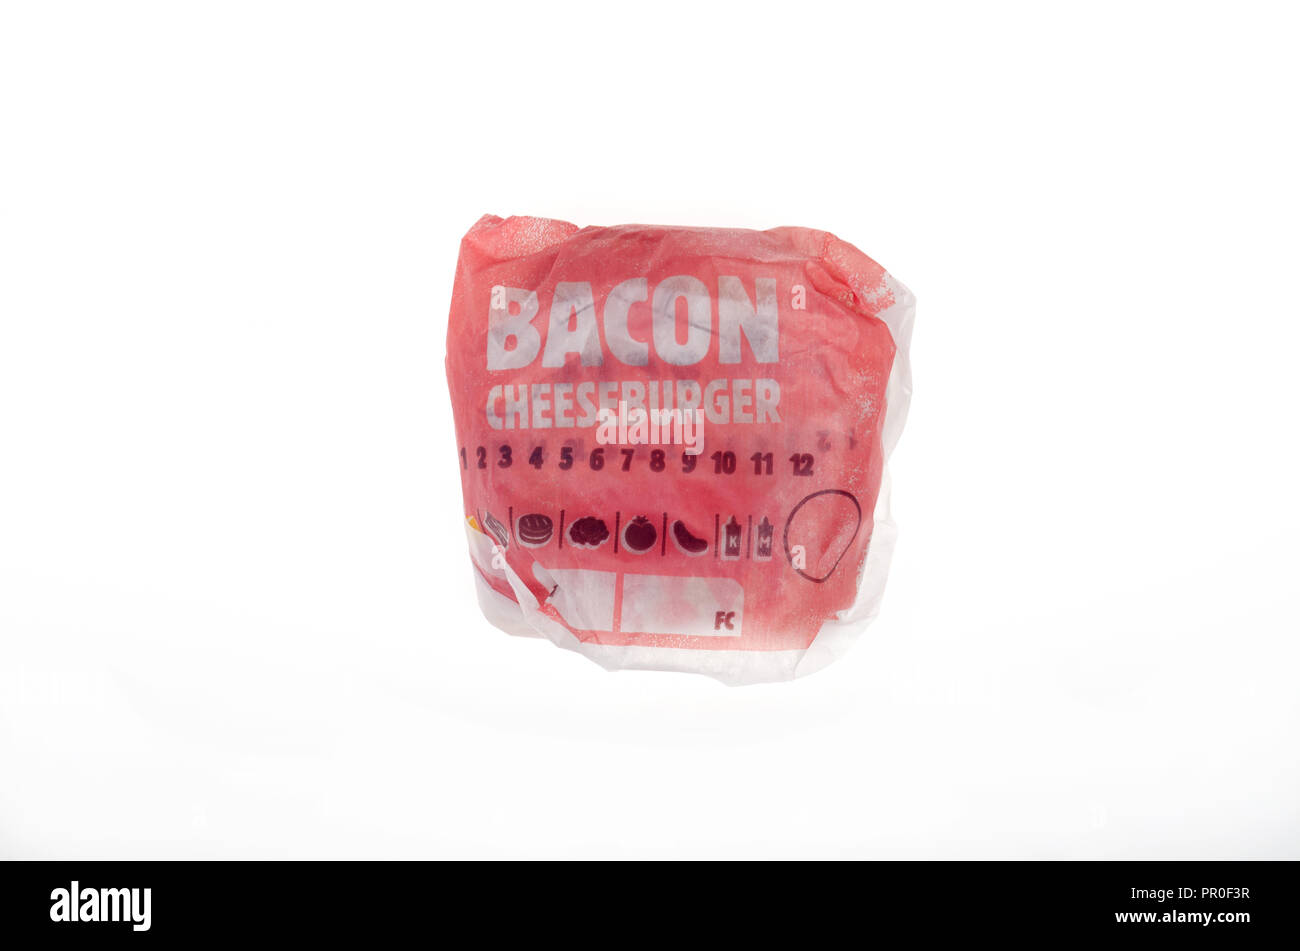 Burger King Bacon Cheeseburger in wrapper - Stock Image